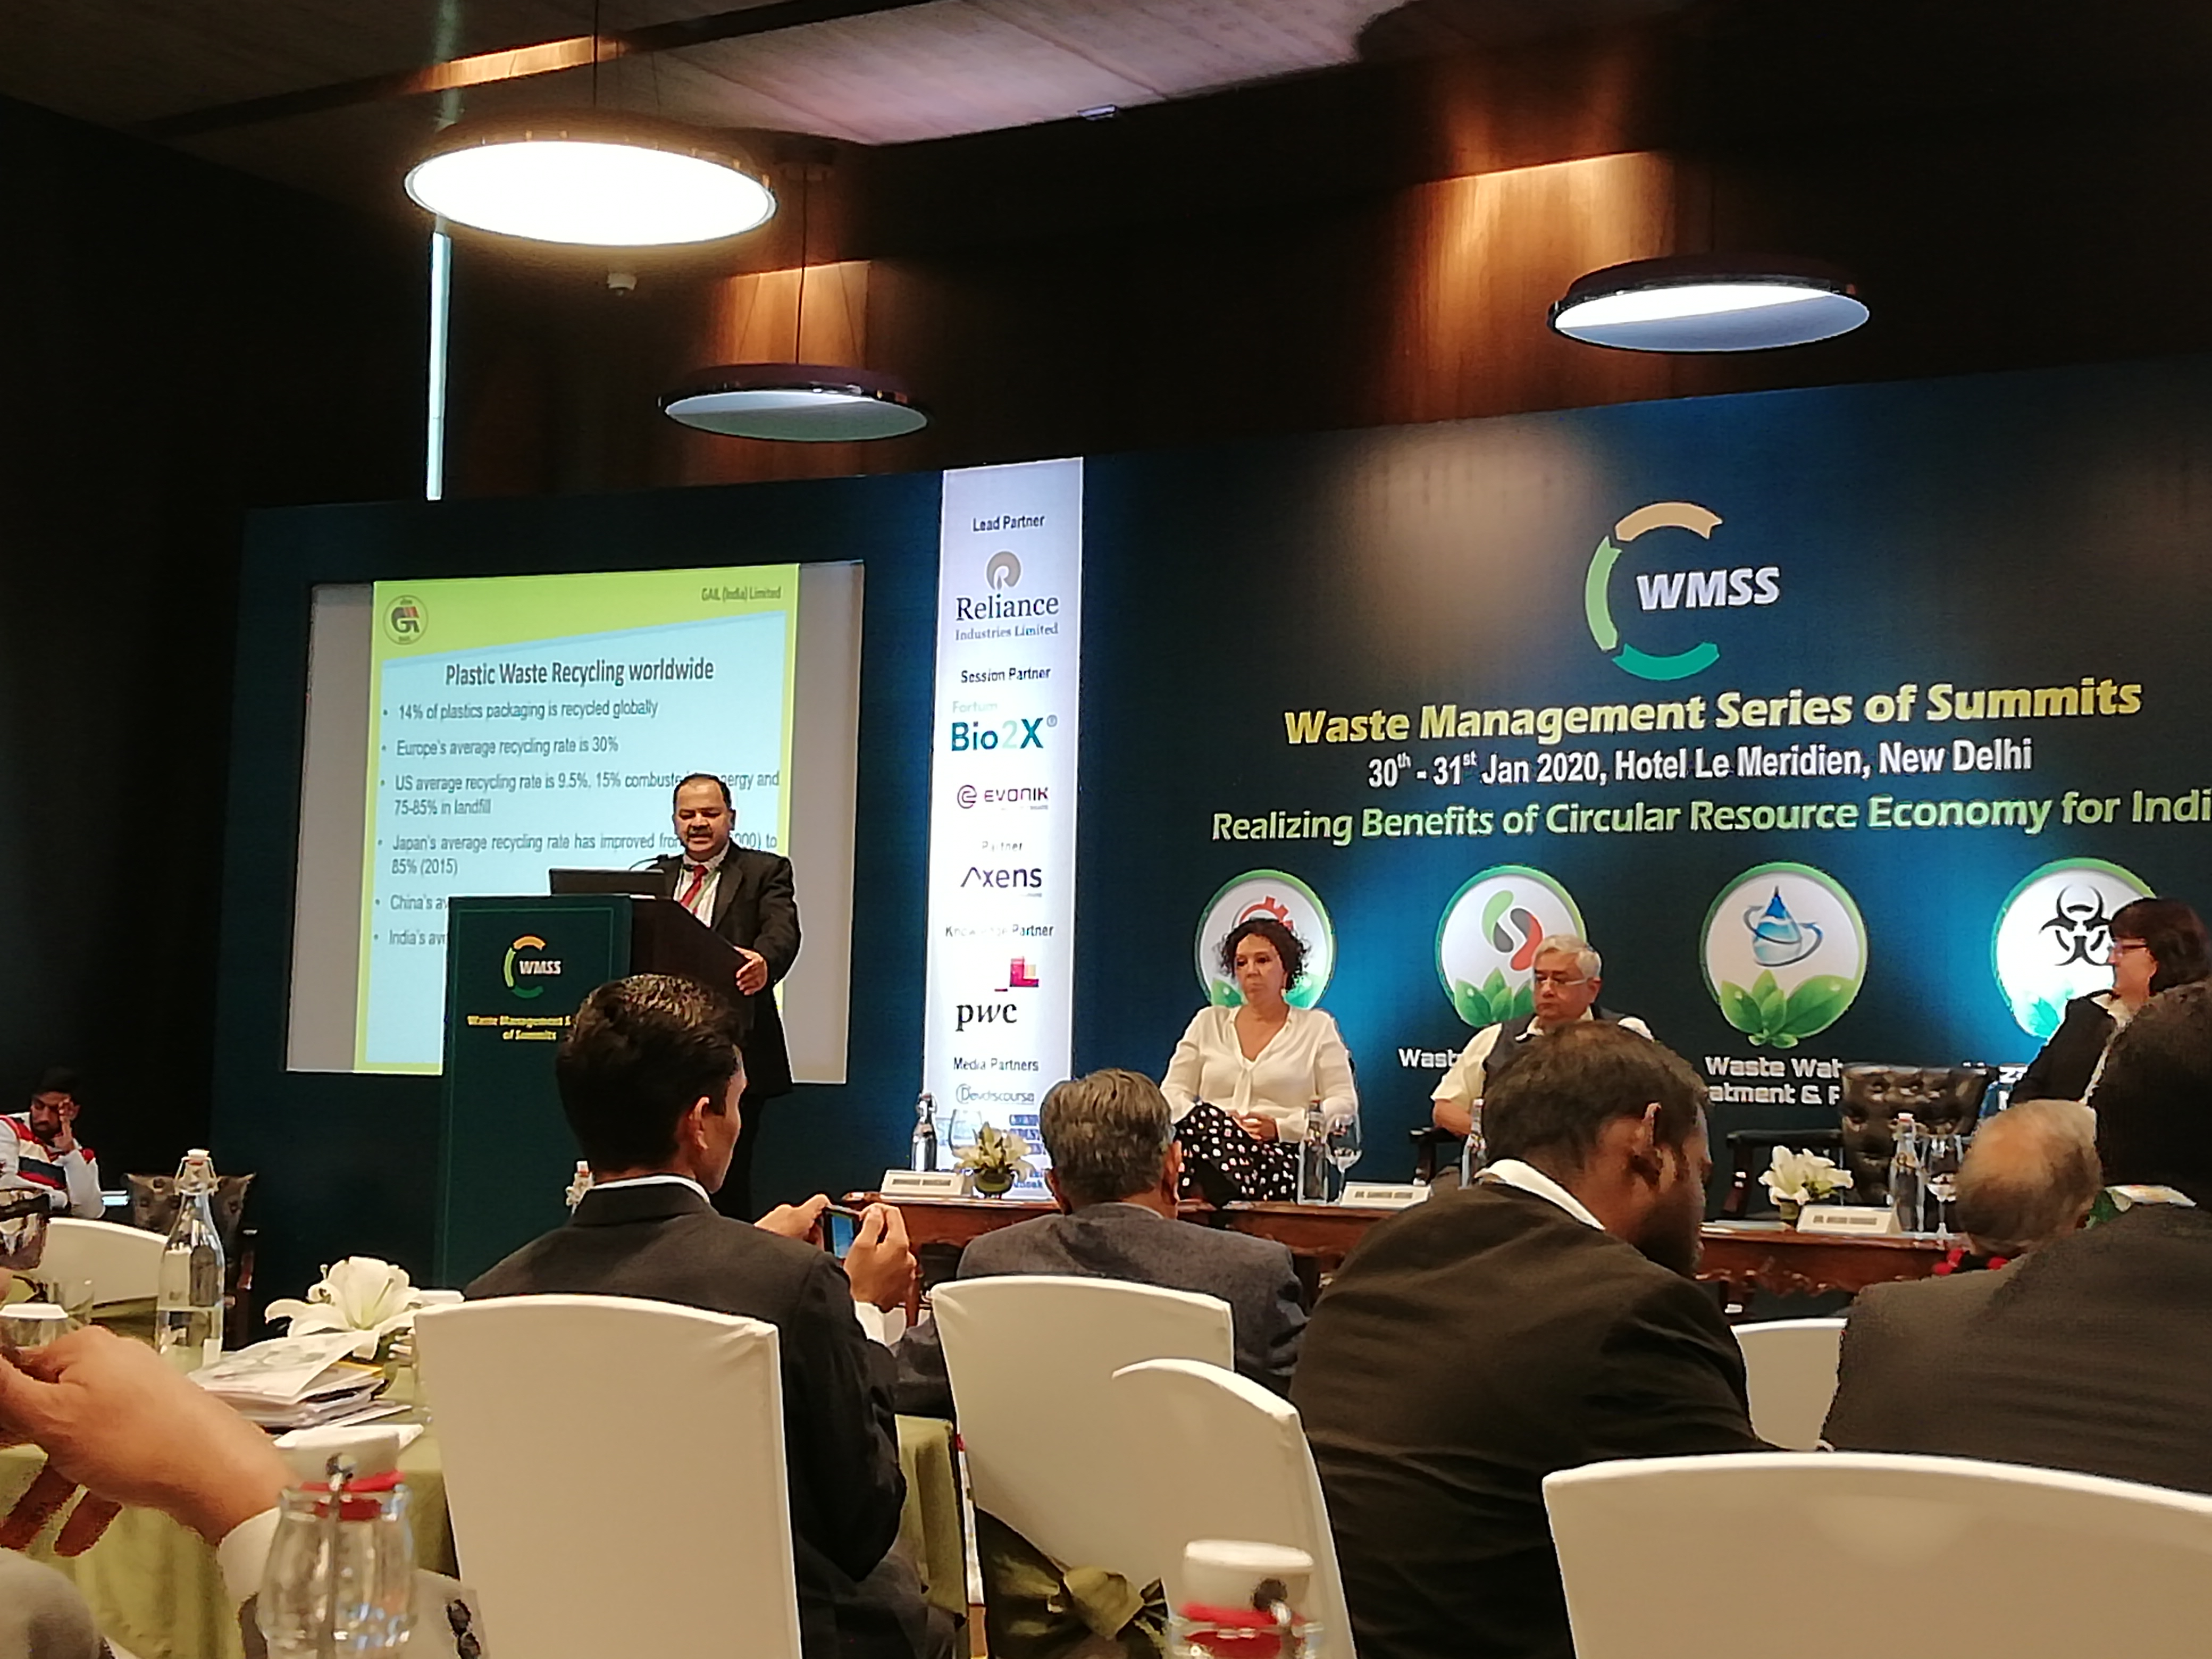 WMSS 2020: Manish Khandelwal talks about importance of plastic waste management